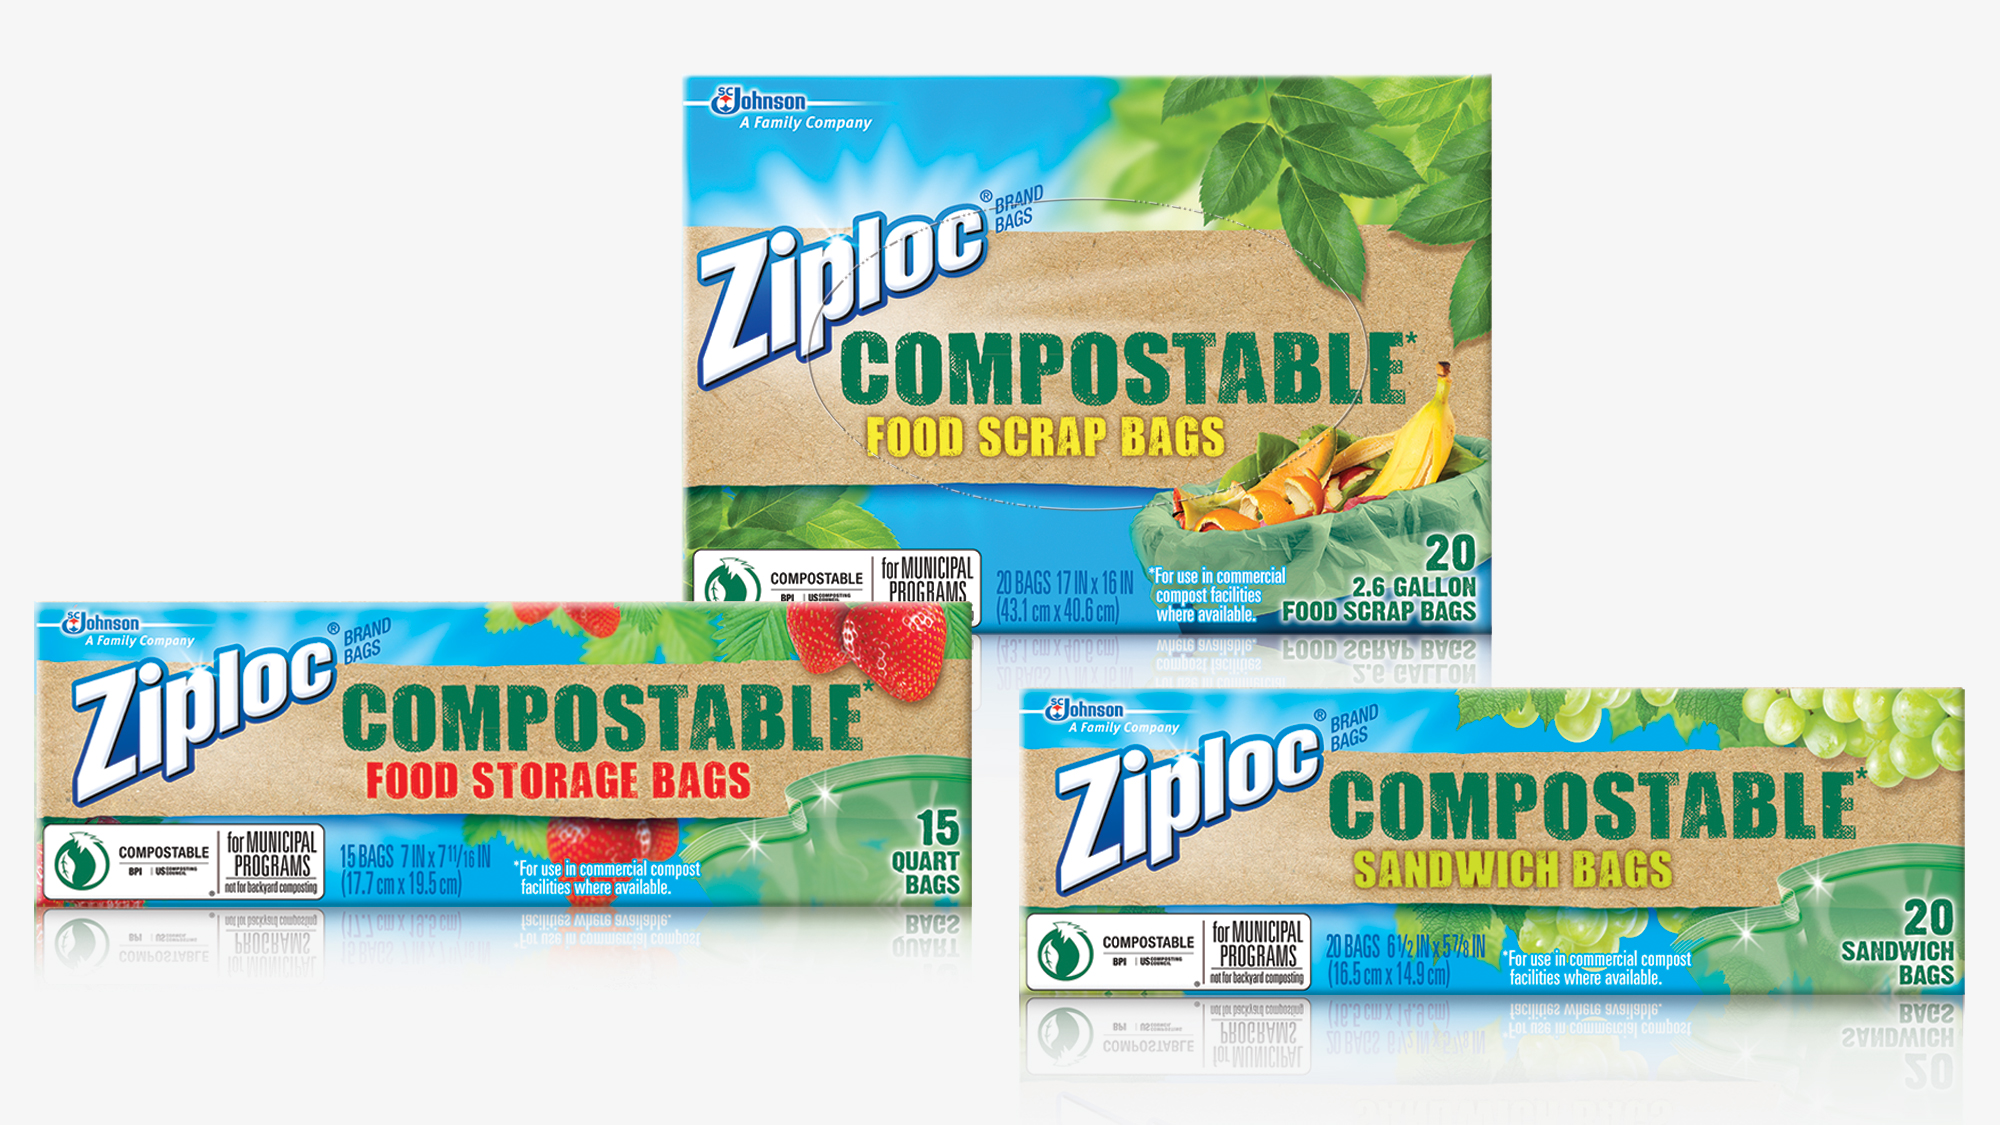 Environmental research and trends showed demand for products like Ziploc compostable bags